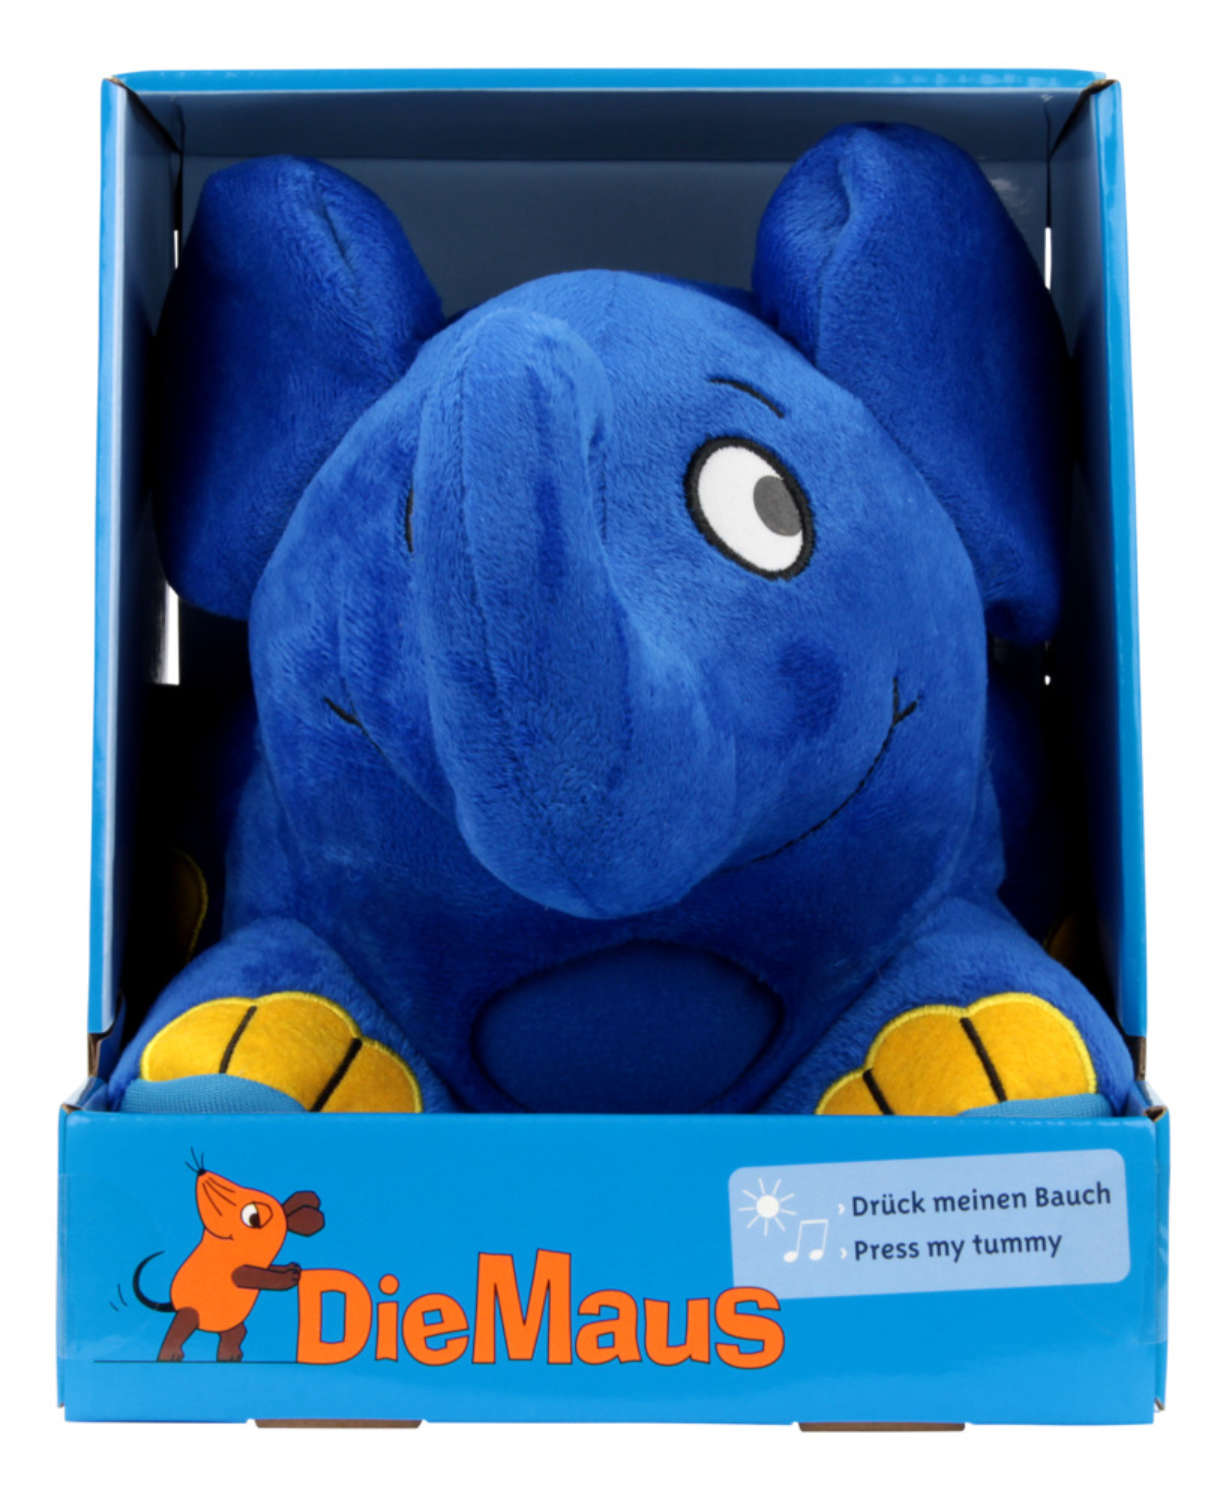 1800-0014_CP-Slumber Nightlight-Die-Maus-Elefant-cb3